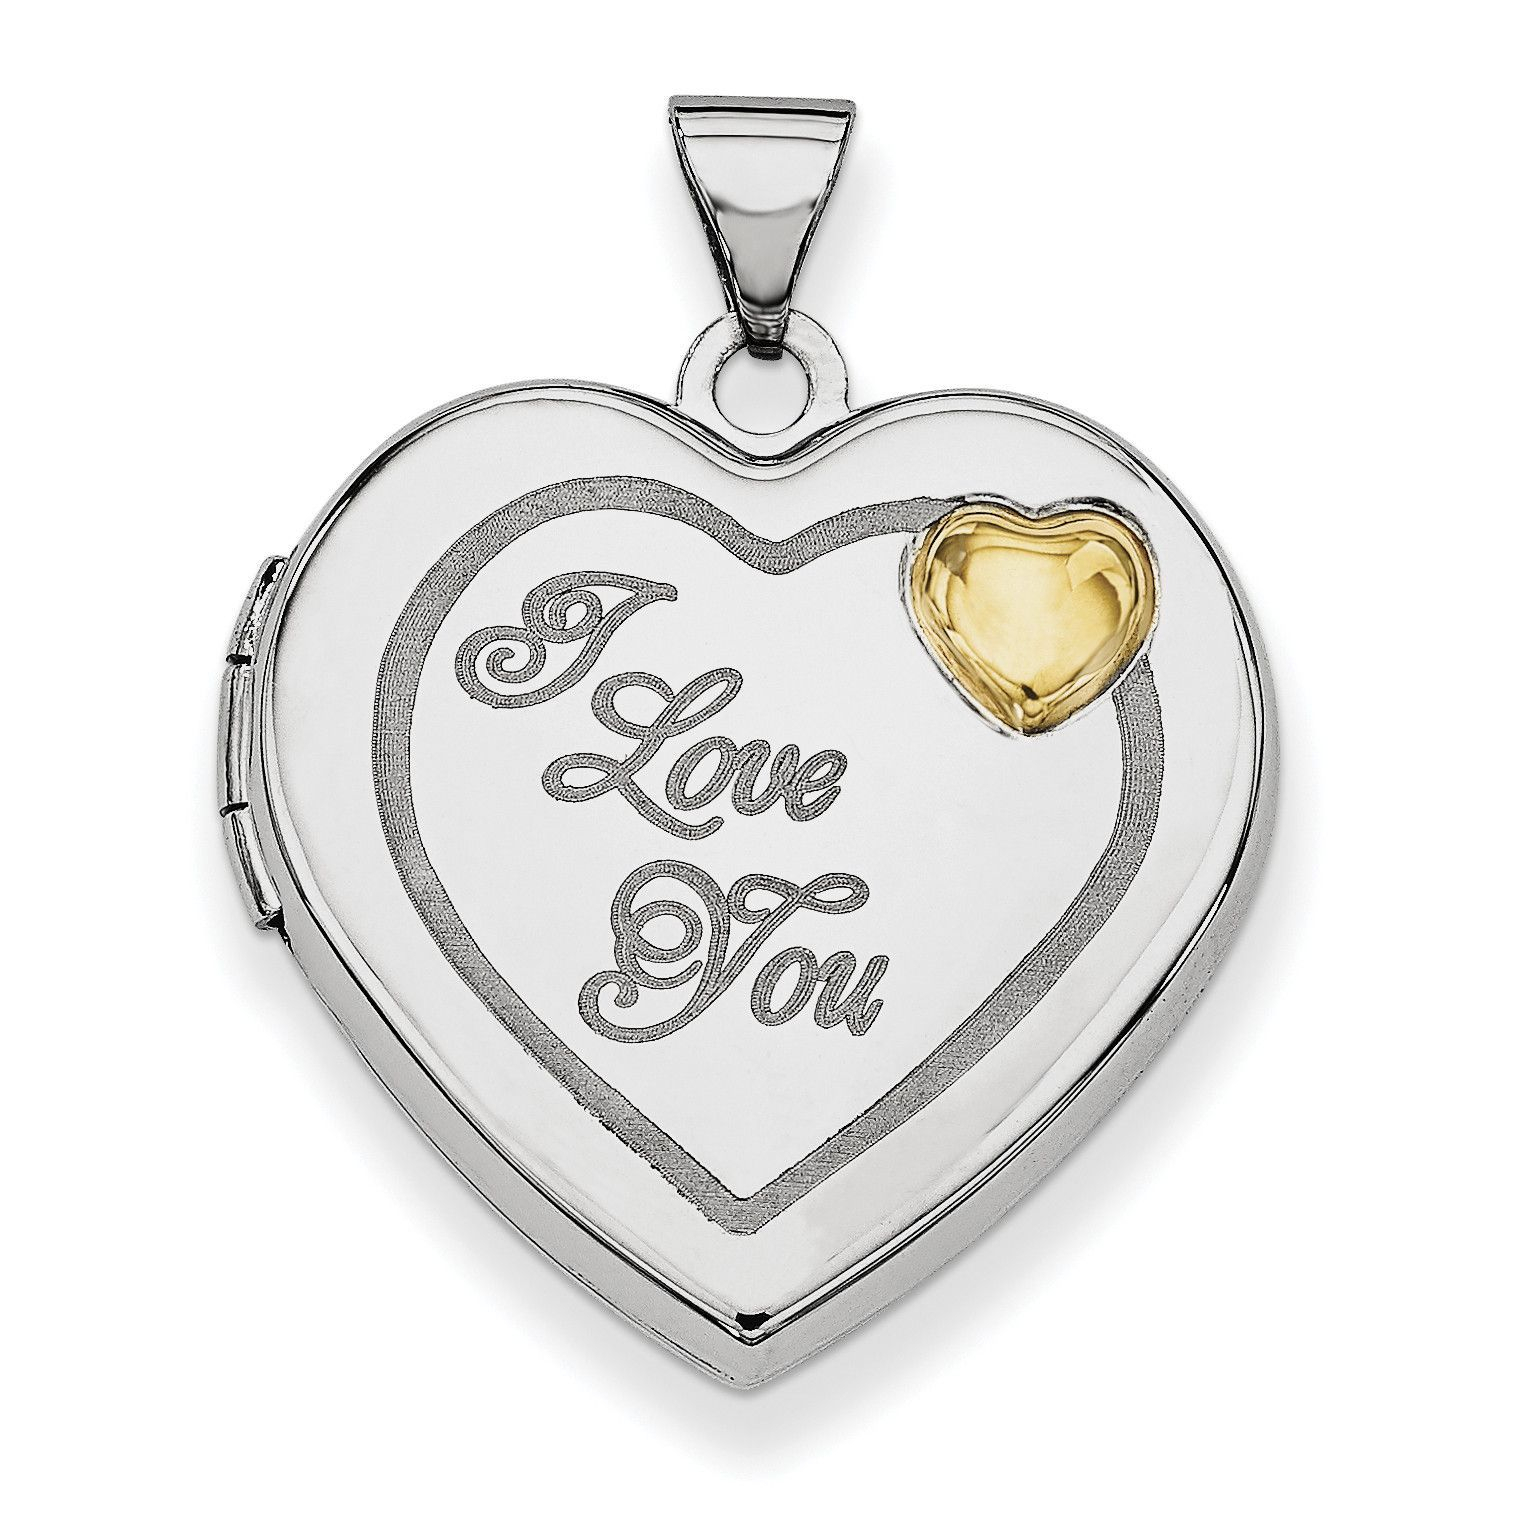 Sterling Silver Rhodium Plated W/gold Plate 21mm Heart Locket Qls605 Within Recent Heart Locket Plate Necklaces (View 11 of 25)